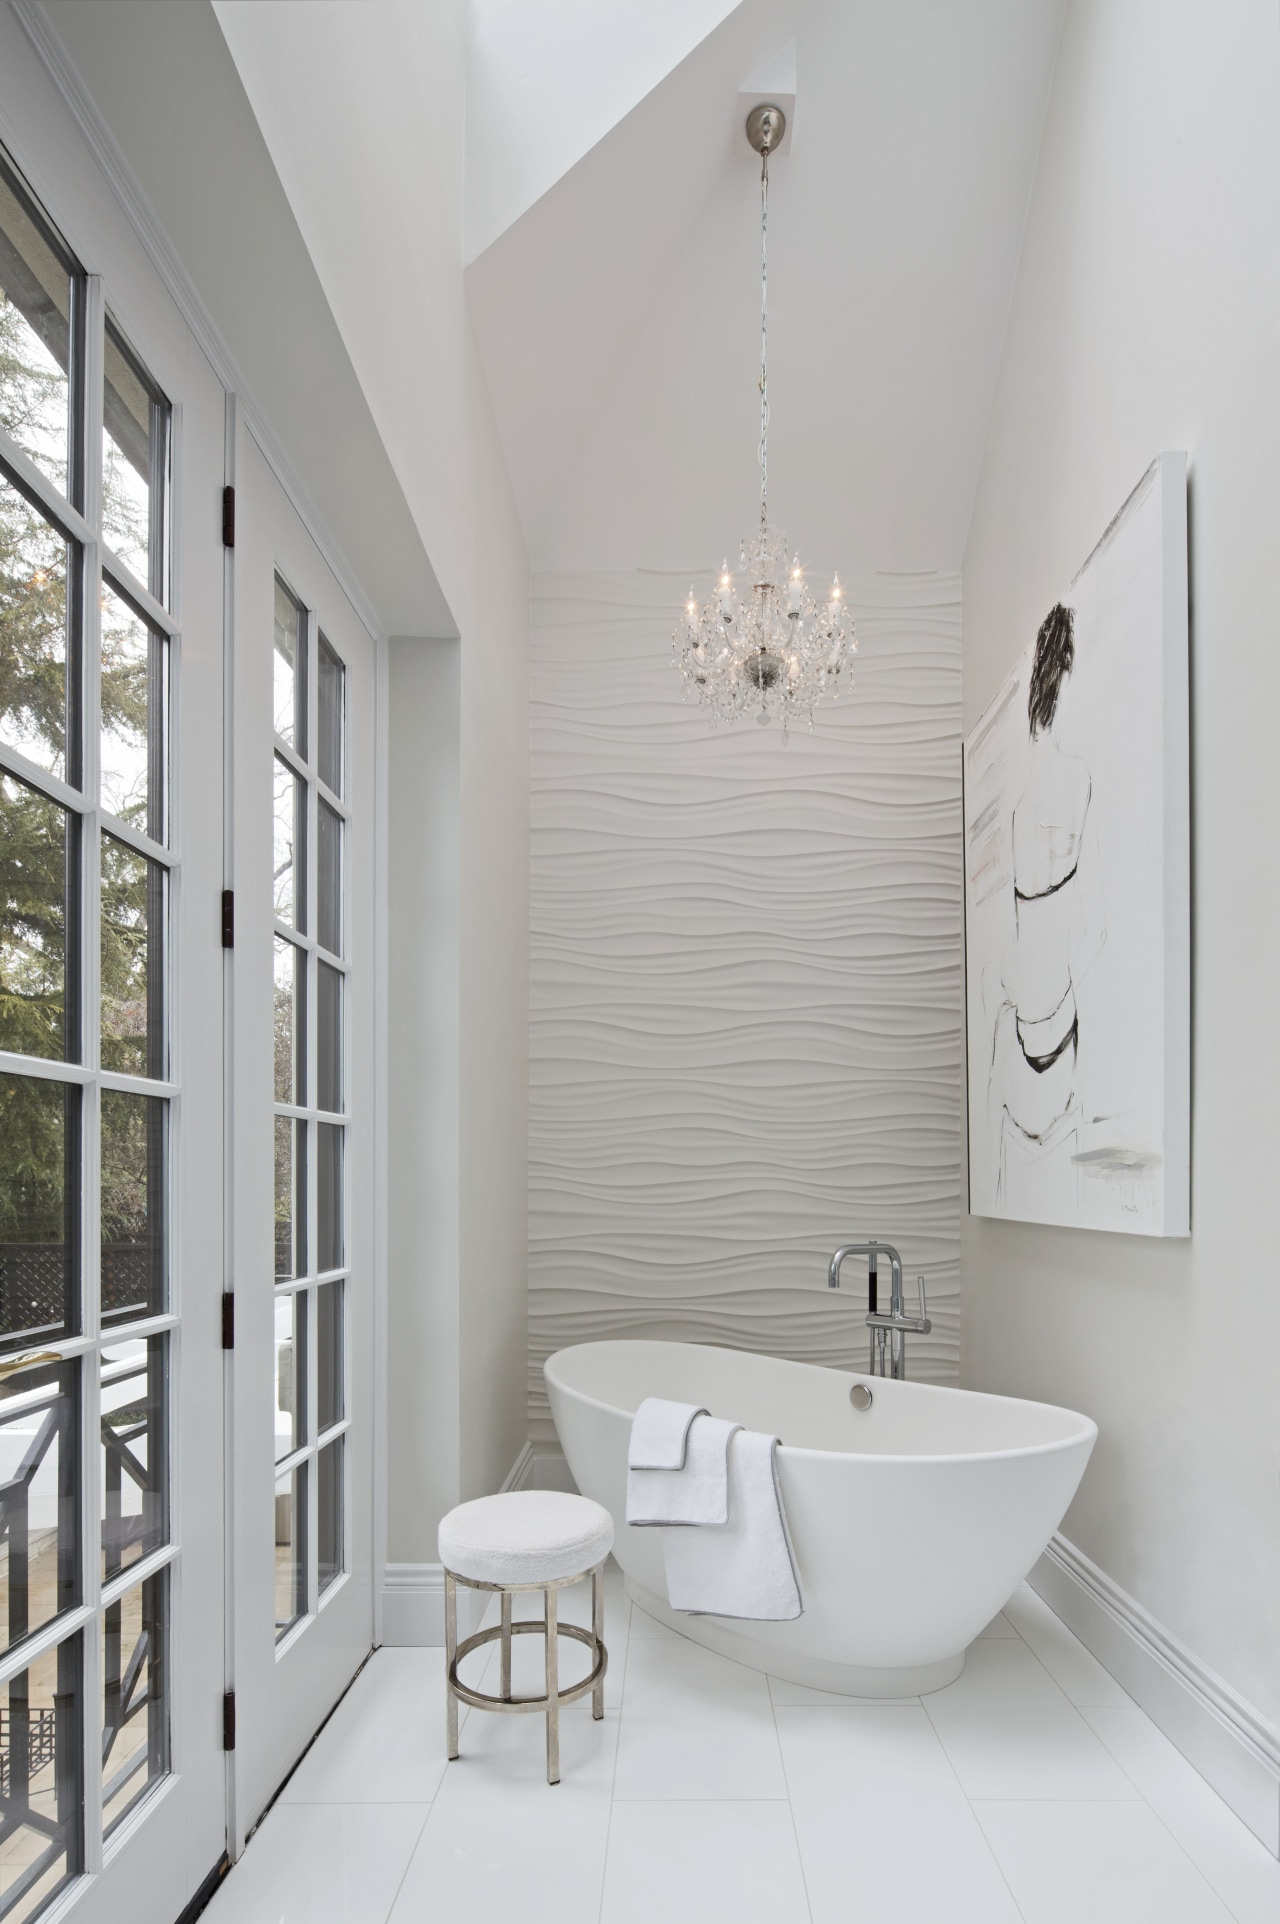 A sculptural freestanding tub sits beside the French bathroom, bathroom accessory, floor, home, interior design, plumbing fixture, product design, room, sink, tap, gray